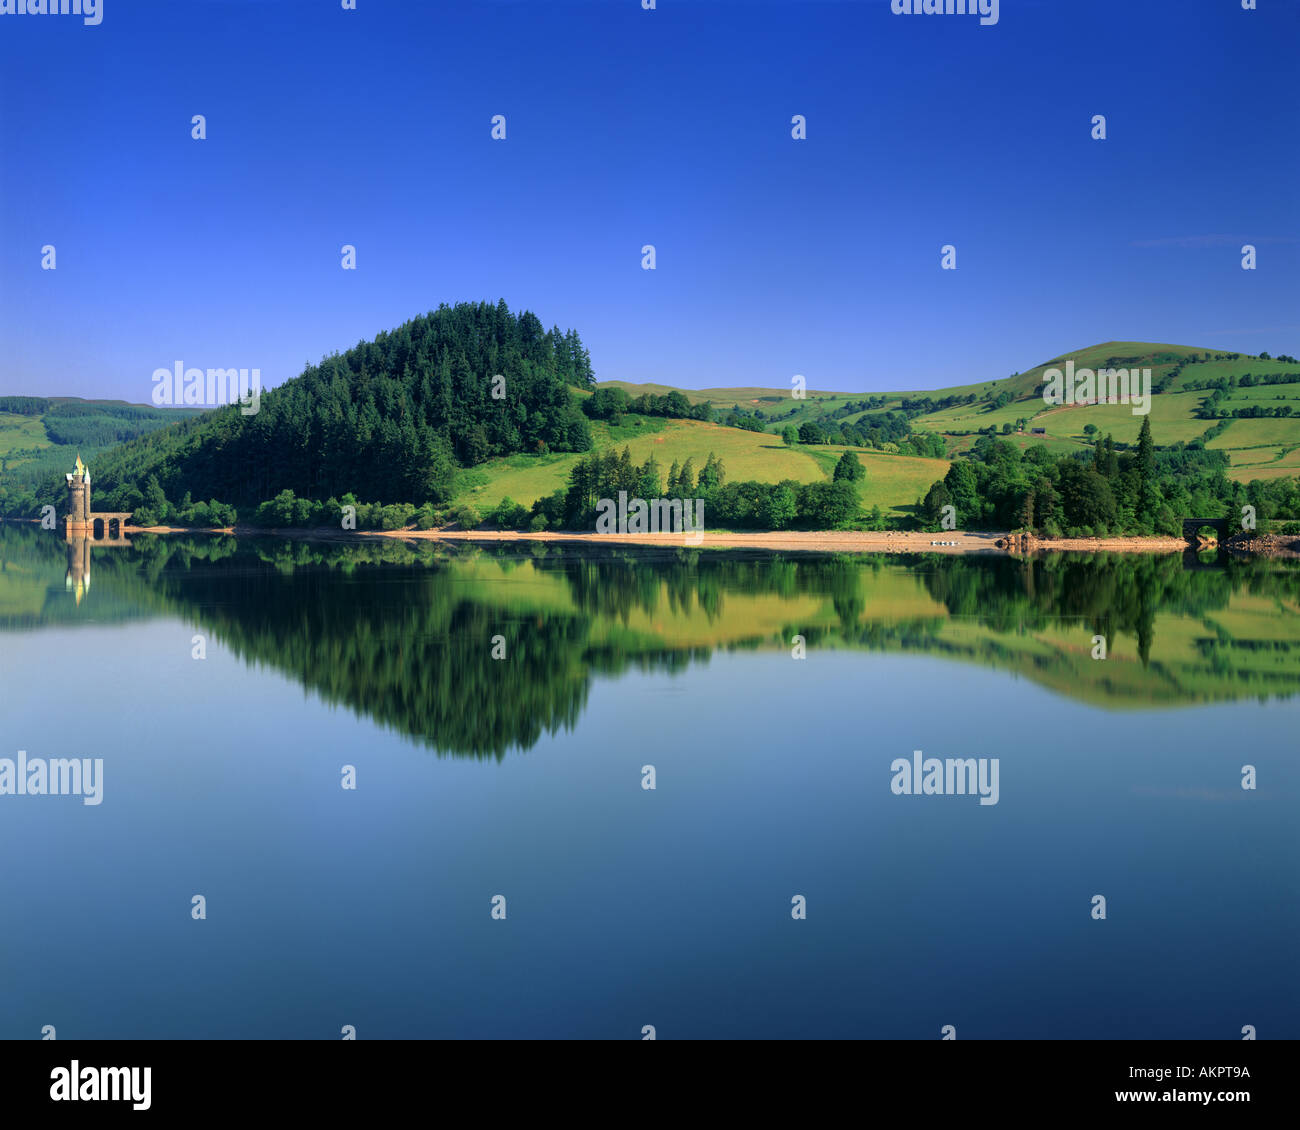 GB - WALES: Lake Vyrnwy - Stock Image